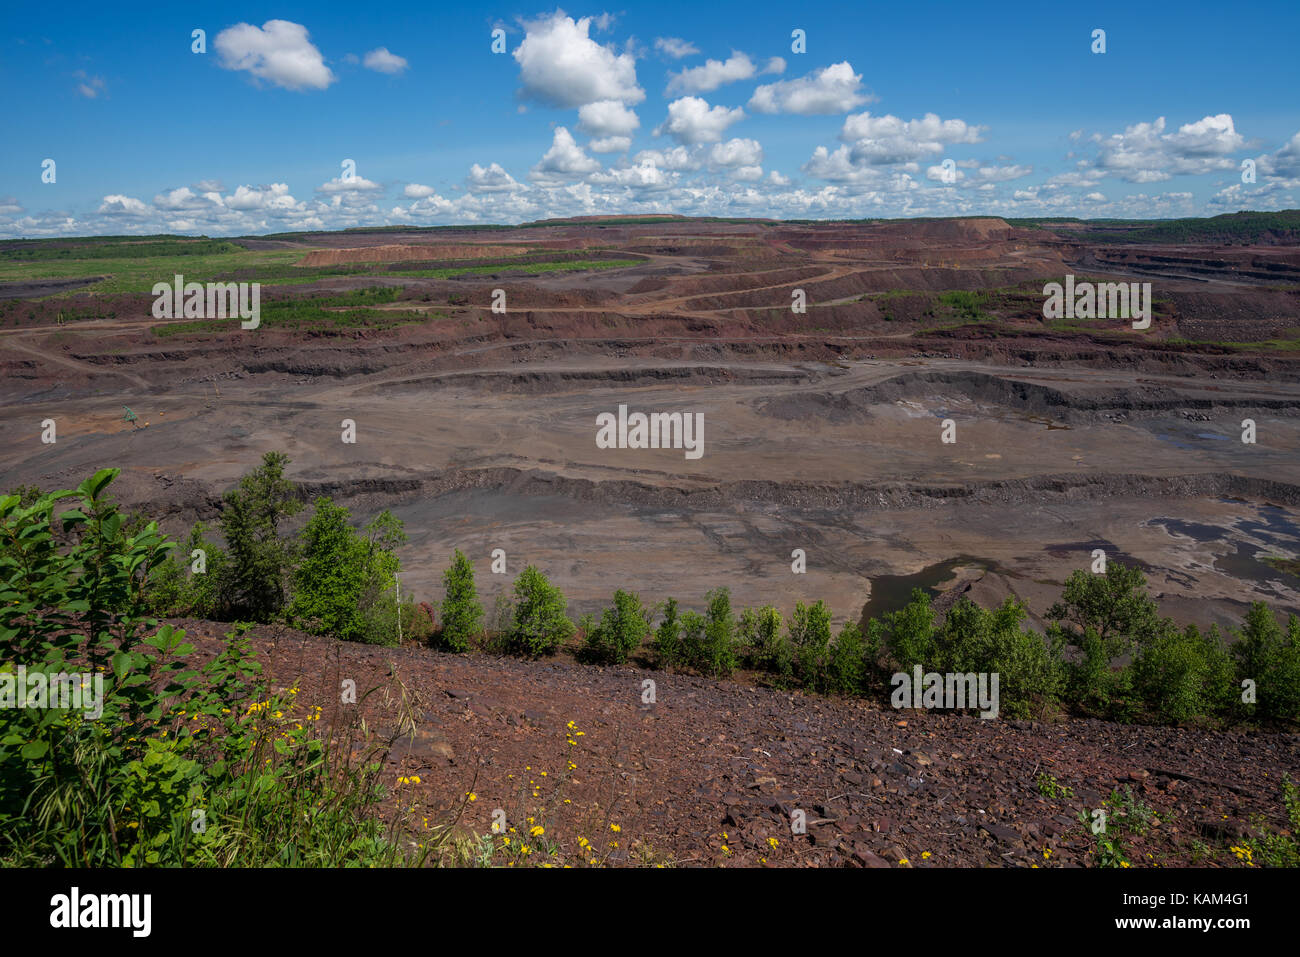 The Hull Rust Mahoning, the world's largest open pit iron ore mine. - Stock Image